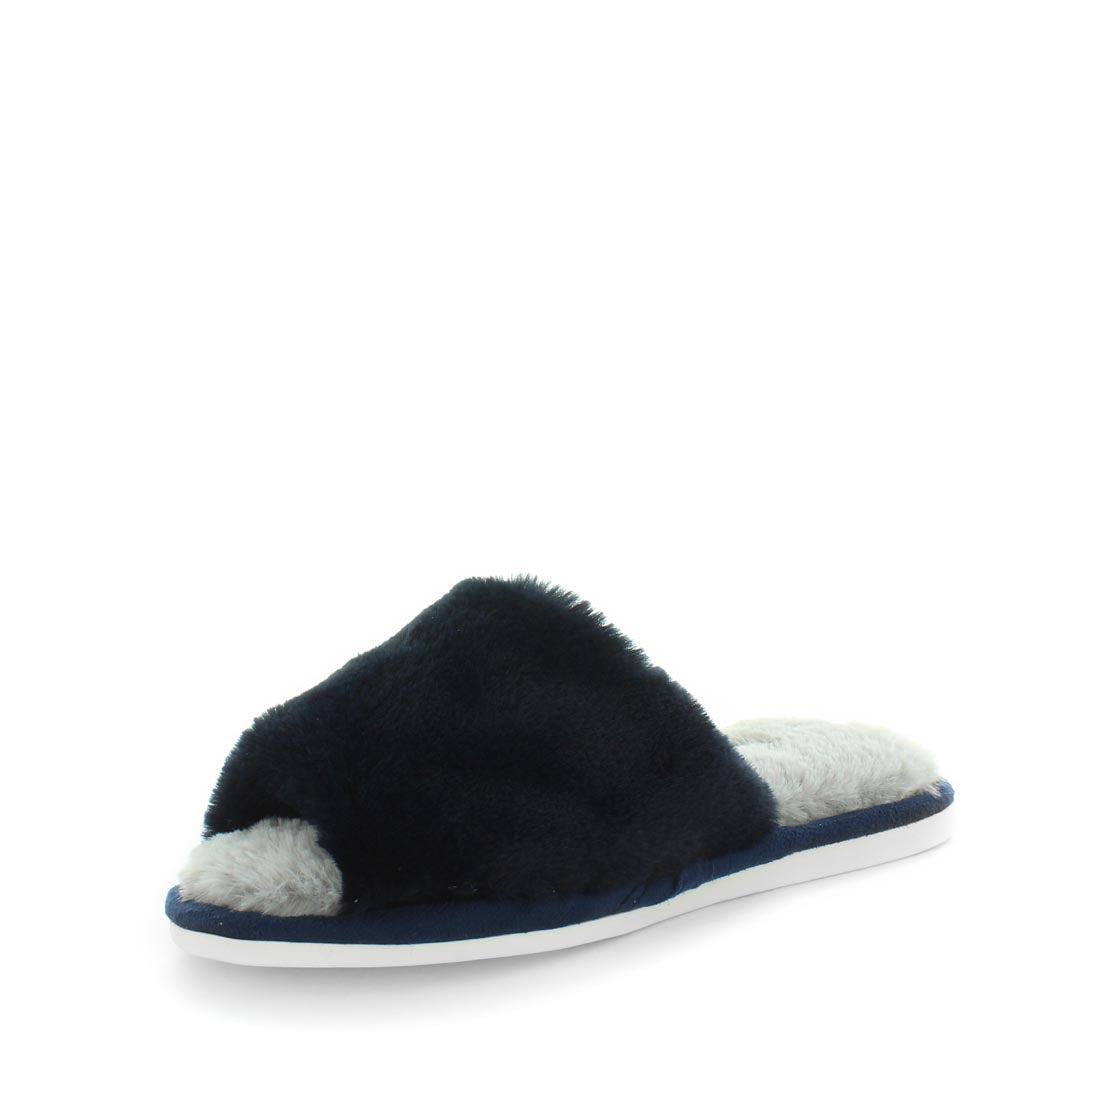 Elbe by Panda - ishoes- - womens slippers - summer slippers - summer womens slippers - slide style slippers with faux fur lining and sock and upperv - very comfortable - in grey and blue